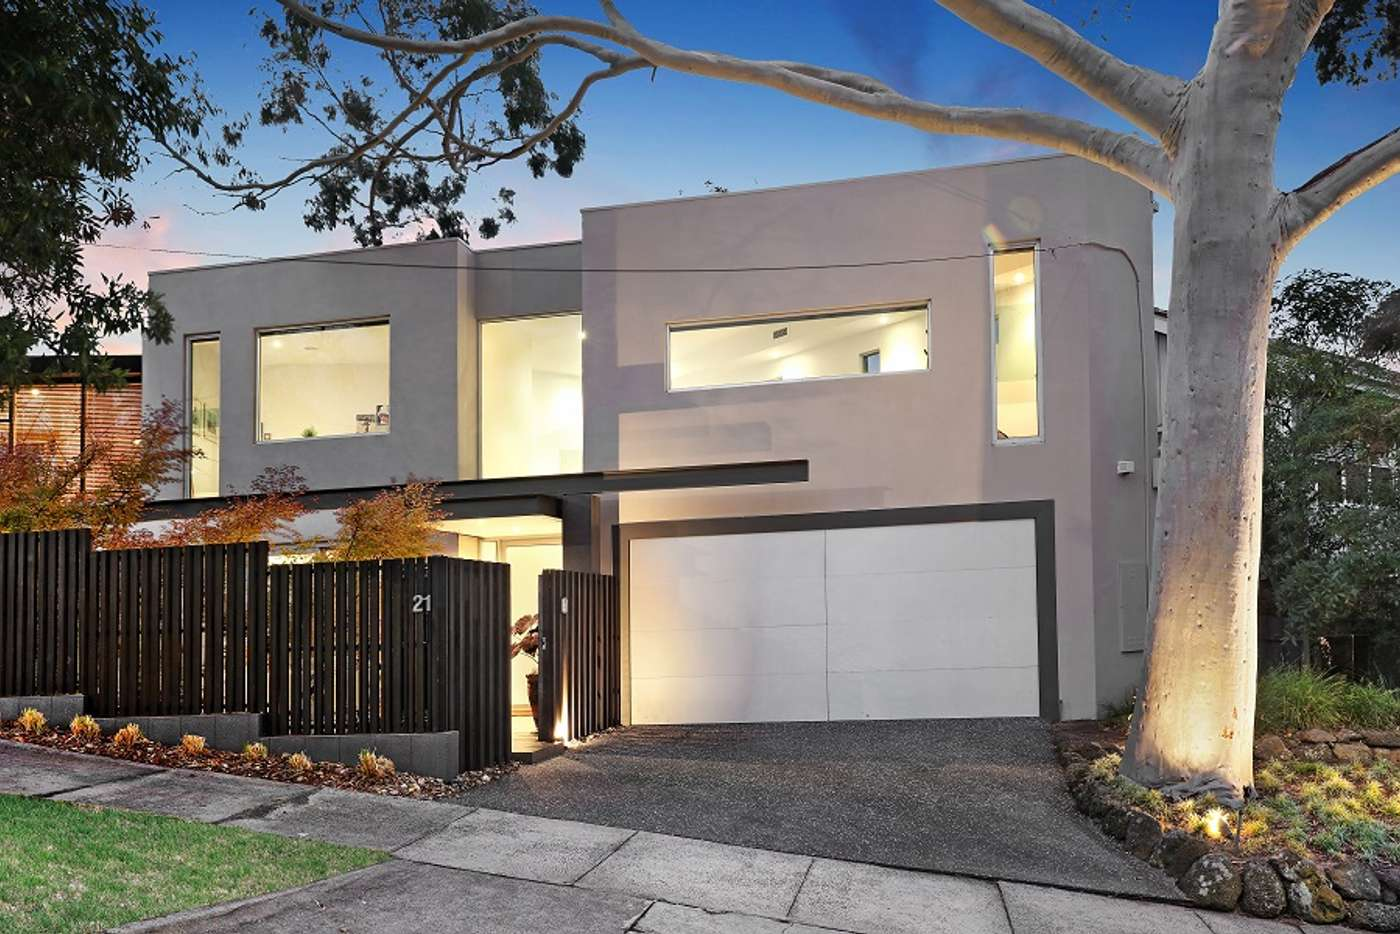 Main view of Homely house listing, 21 Coronet Grove, Beaumaris VIC 3193